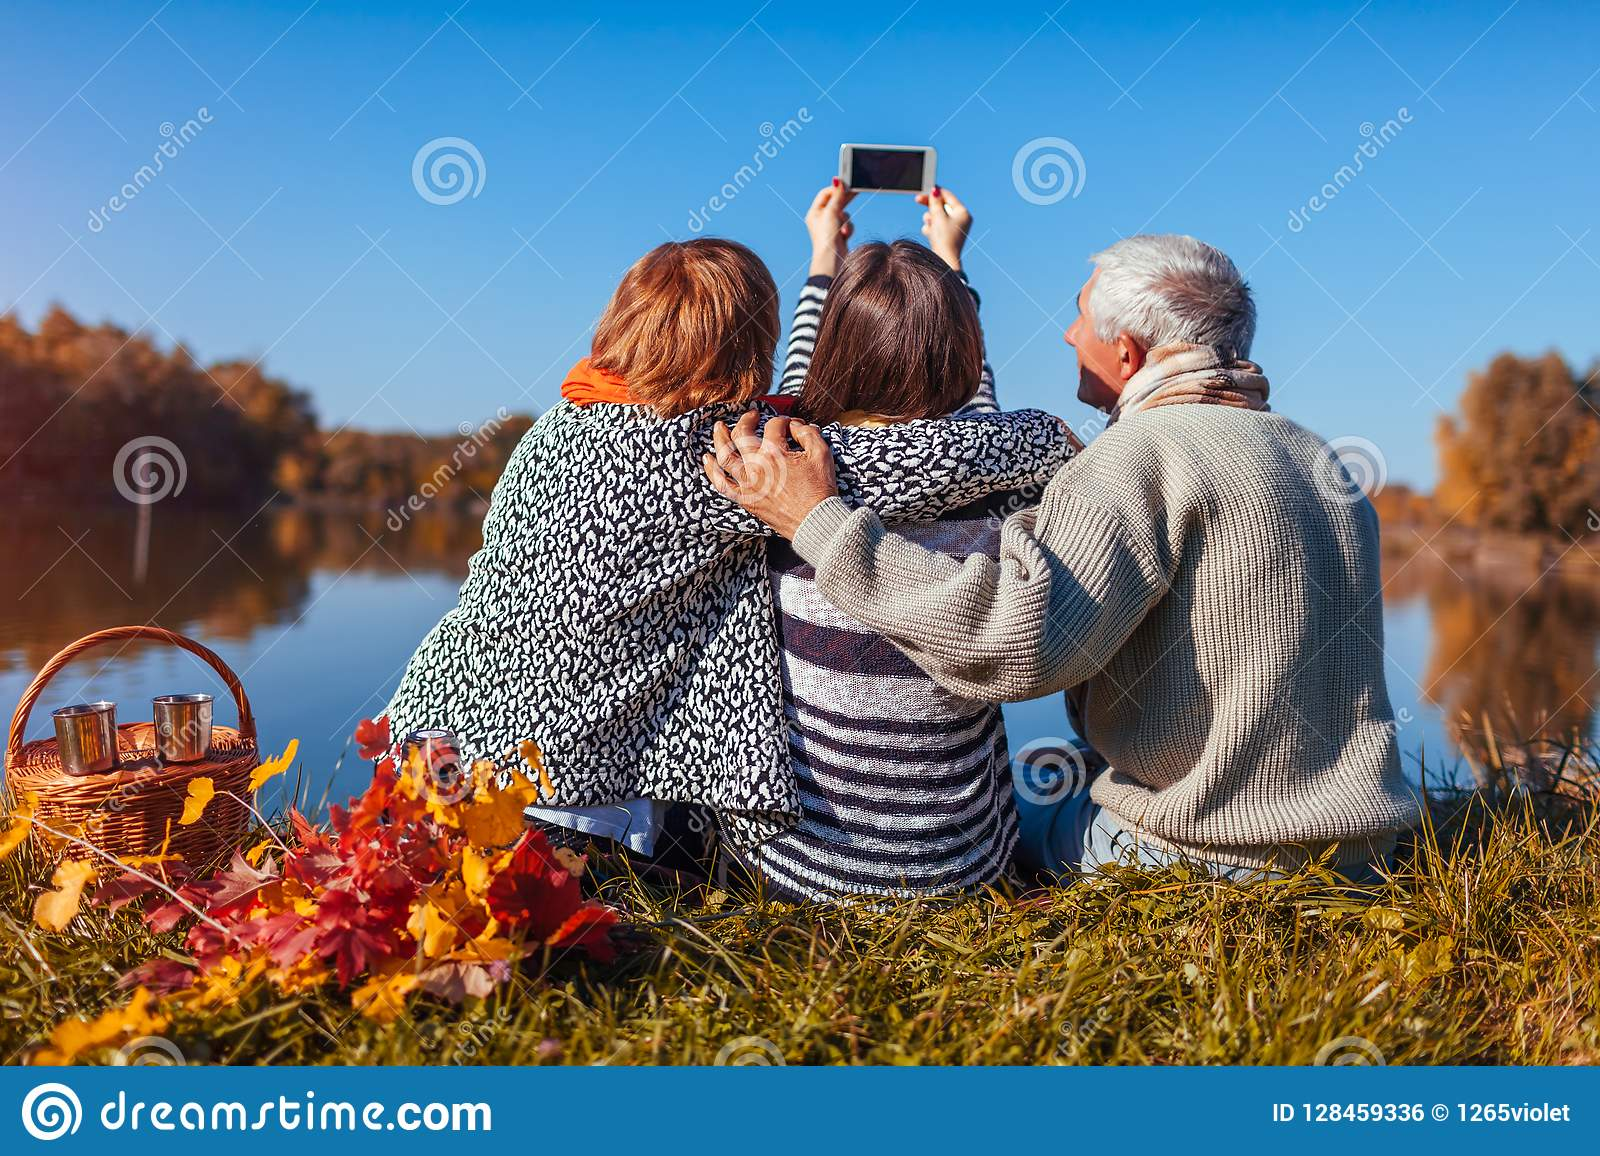 Senior parents taking selfie by autumn lake with their adult daughter. Family values. People having picnic